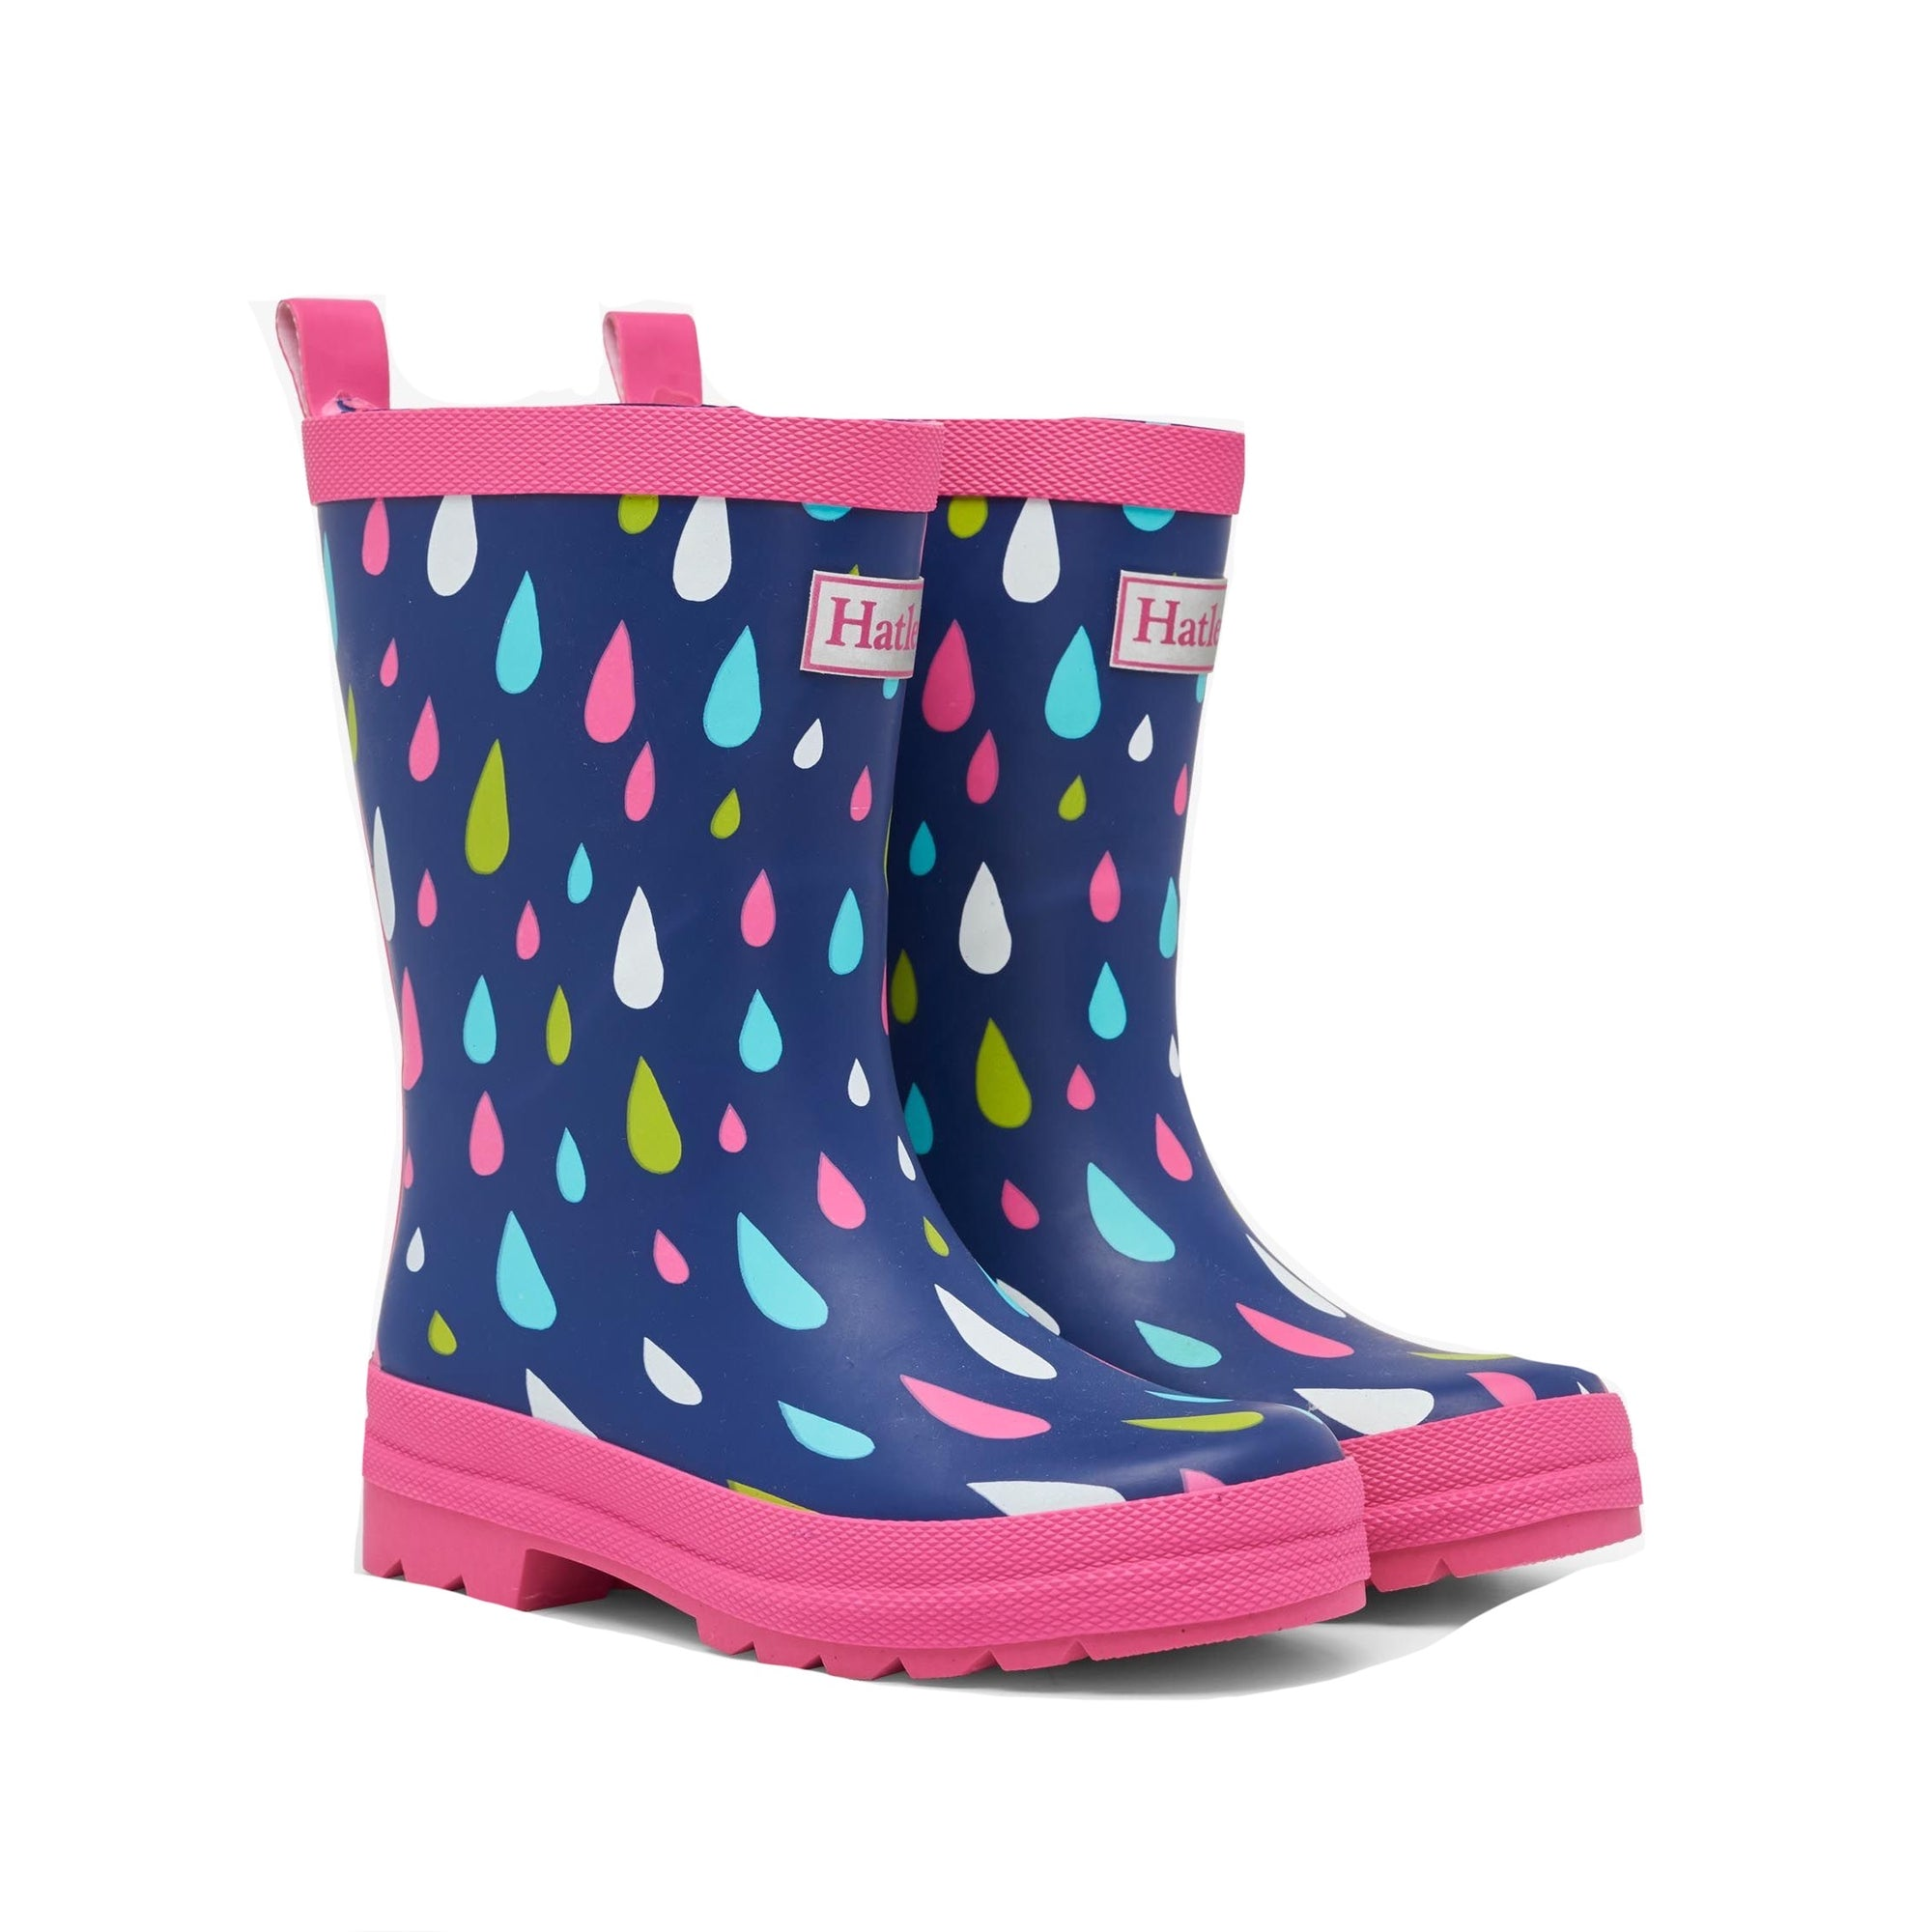 Hatley Girls Raindrop Wellingtons S21ddk1367